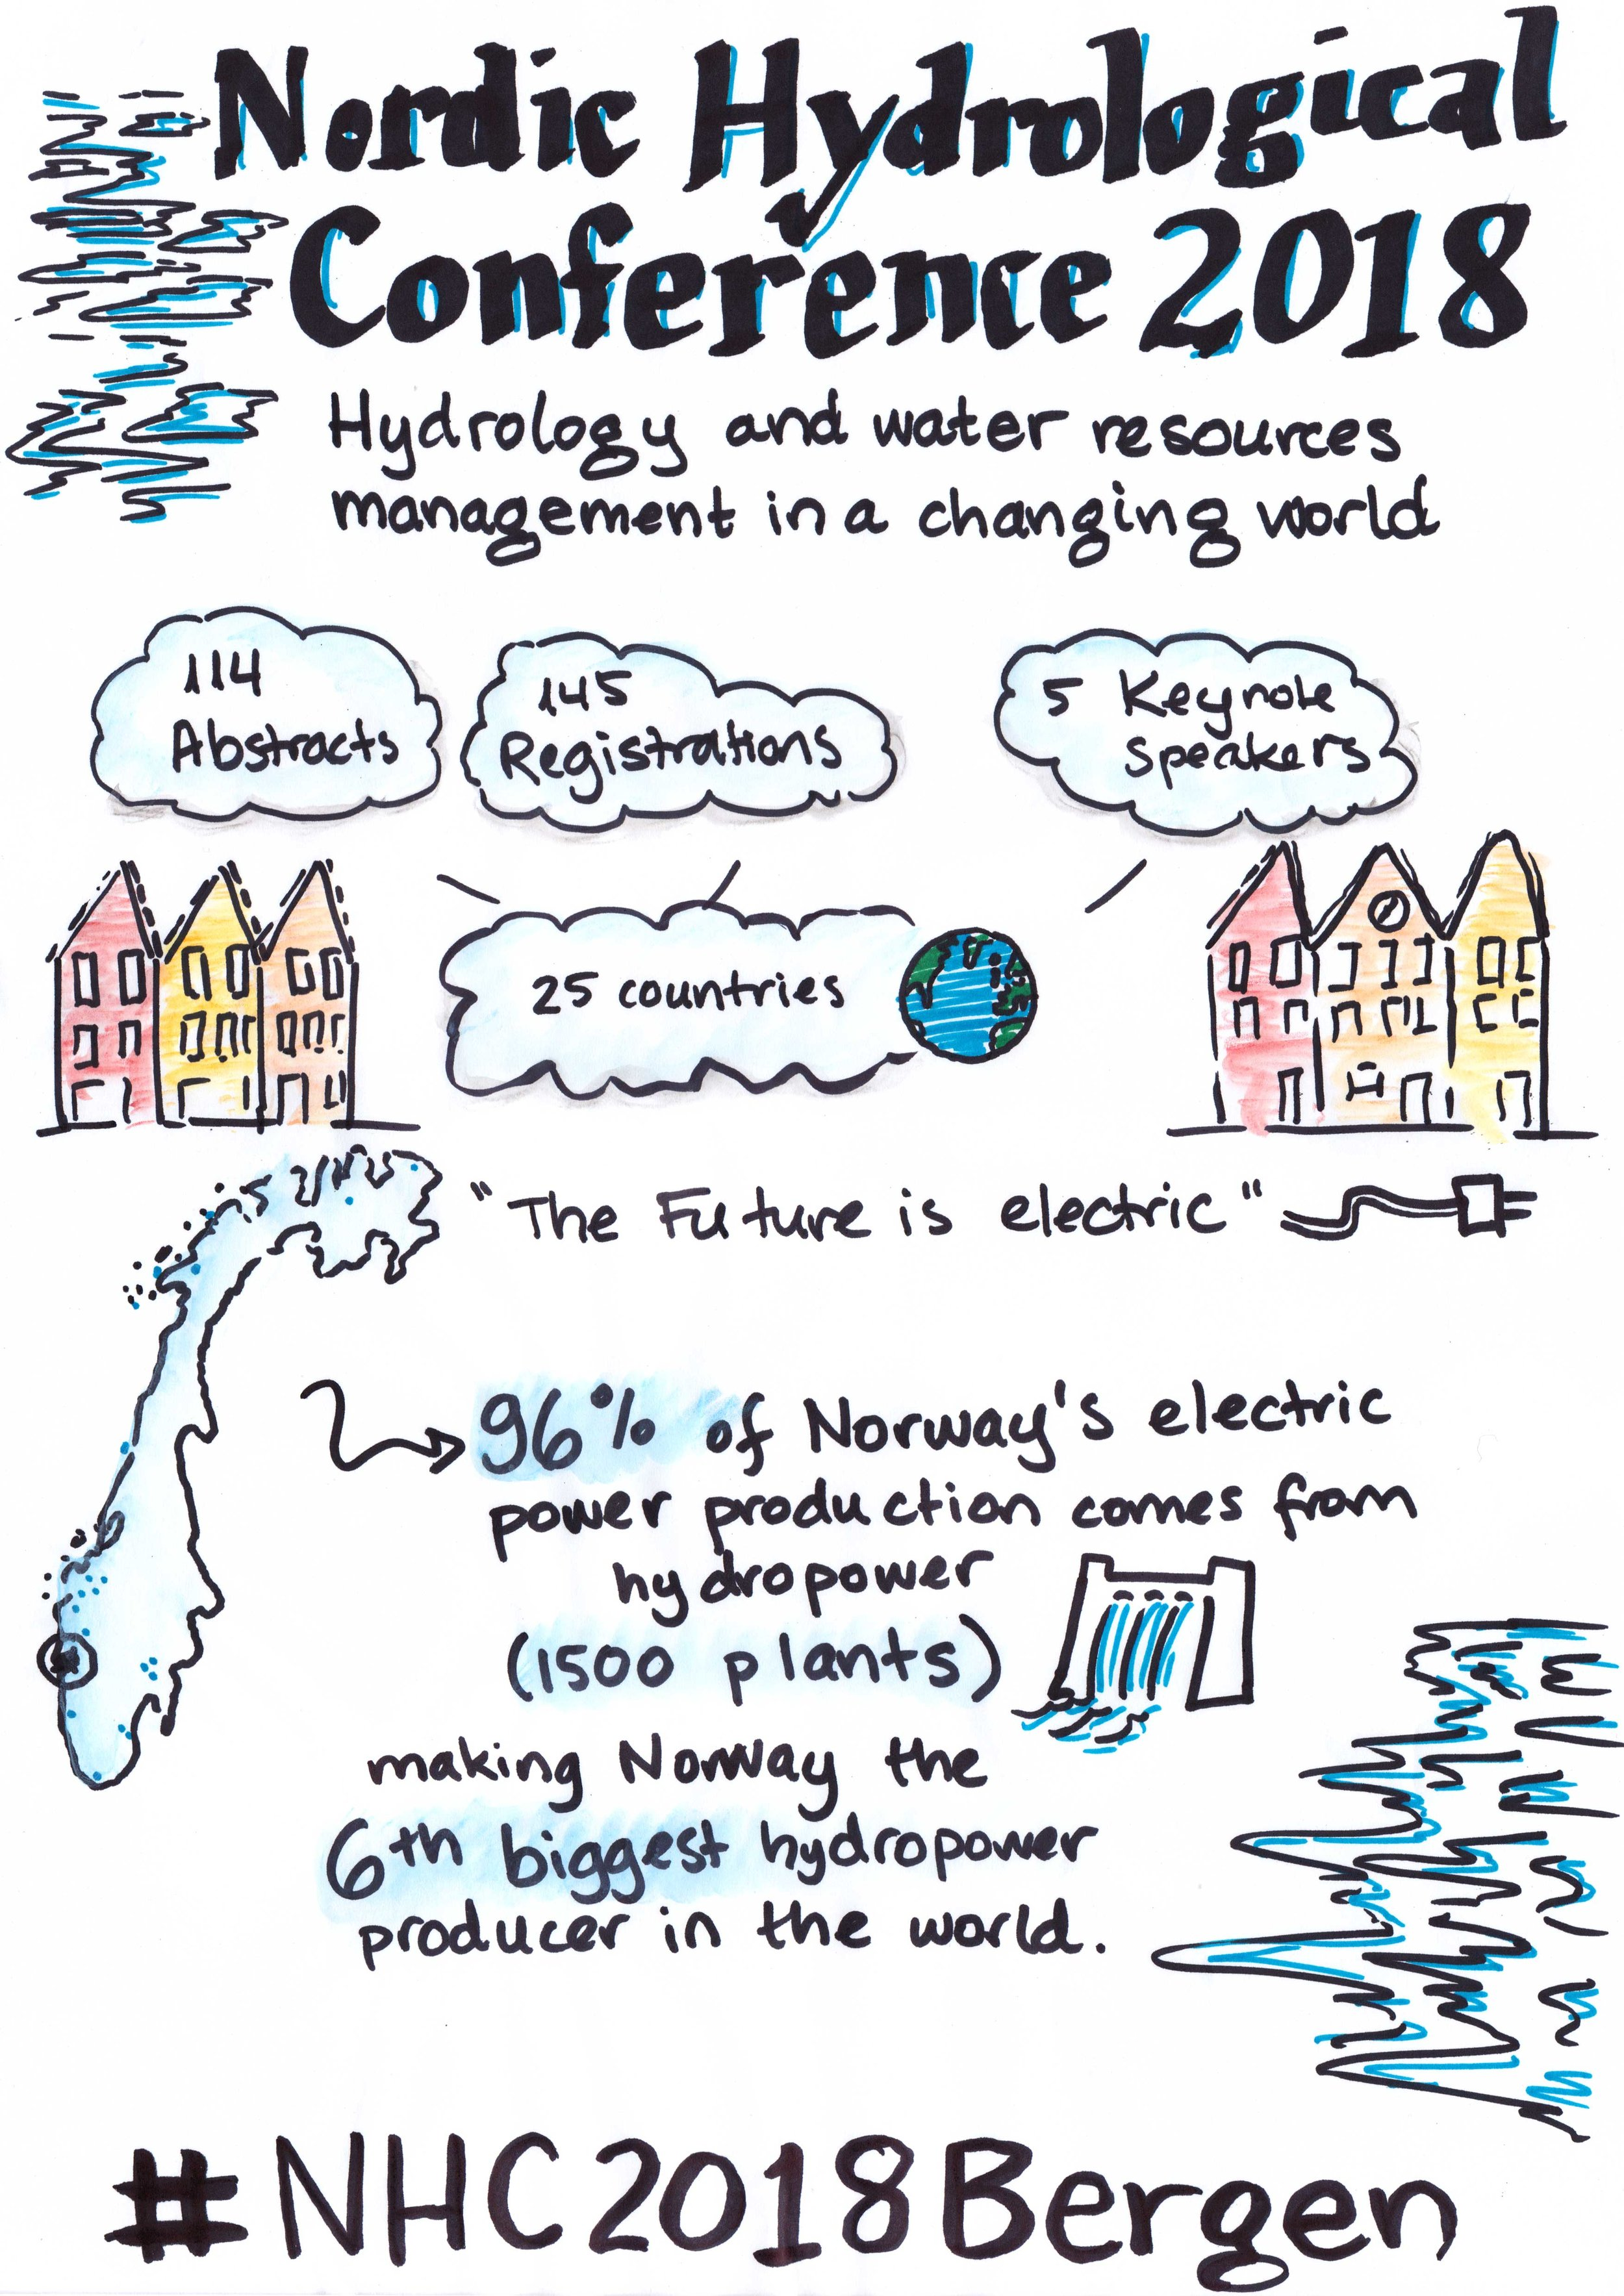 In August 2018 I did graphic recording at the Nordic Hydrology Conference in Bergen, Norway. The conference addressed hydrology and water resource management in a changing world, covering a range of topics from sustainable urban hydrological solutions; groundwater; floods; land-atmosphere interactions; hydrological processes and modelling; climate services; and hydropower. I covered three topic sessions: (1) Surface water, groundwater and blue-green solutions in urban areas, (2) Groundwater, and (3) Environmental flows, water quality and sediments, as well as the talks from the five keynote speakers.